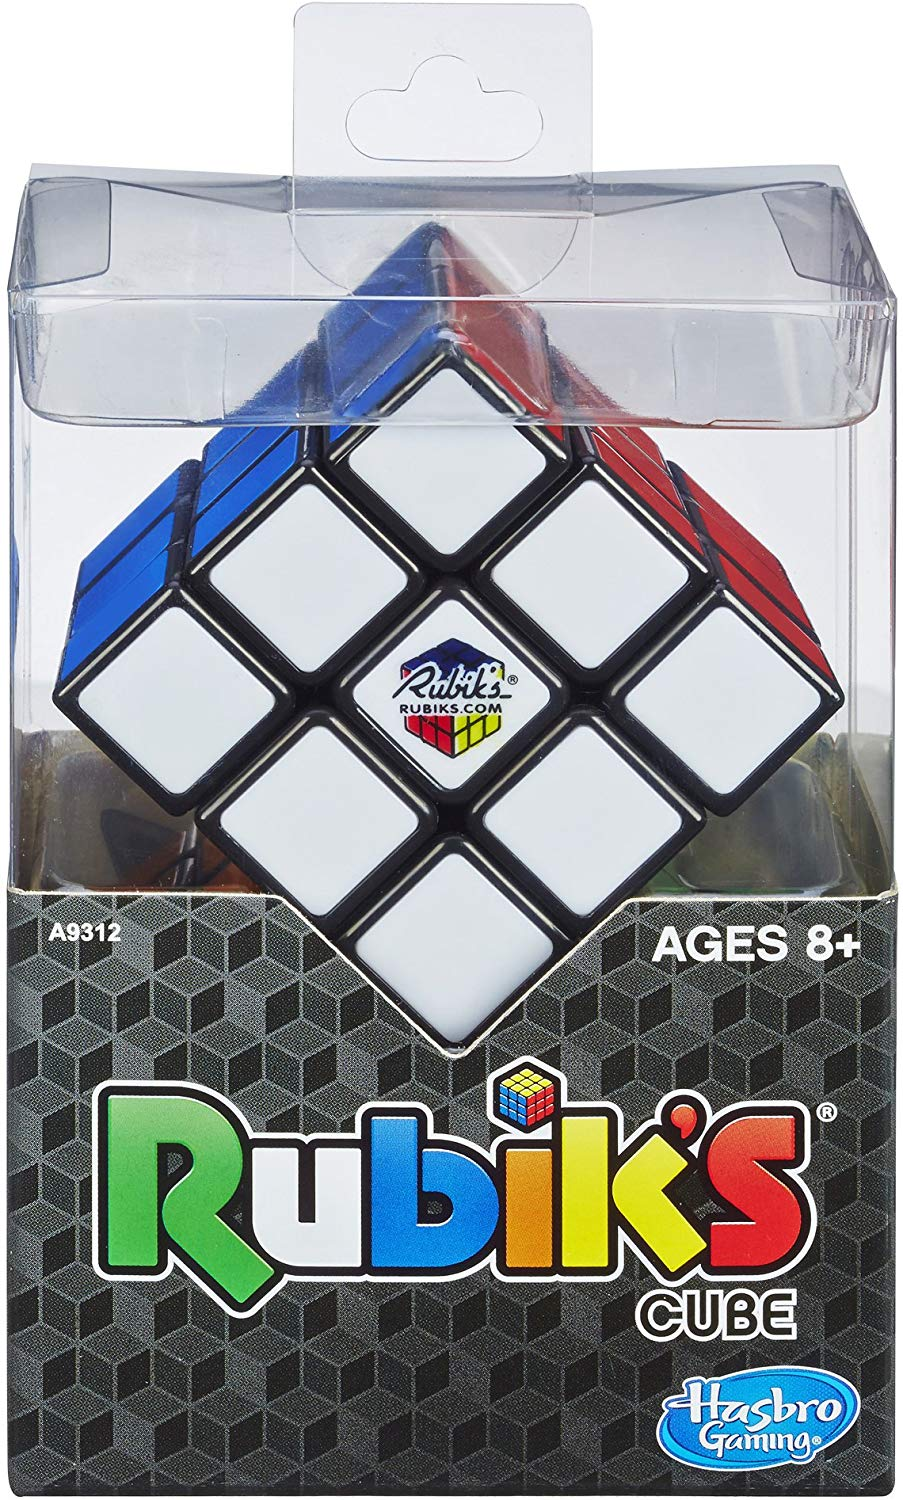 Hasbro Gaming Rubik's Cube only $3.44! (was $11.99)